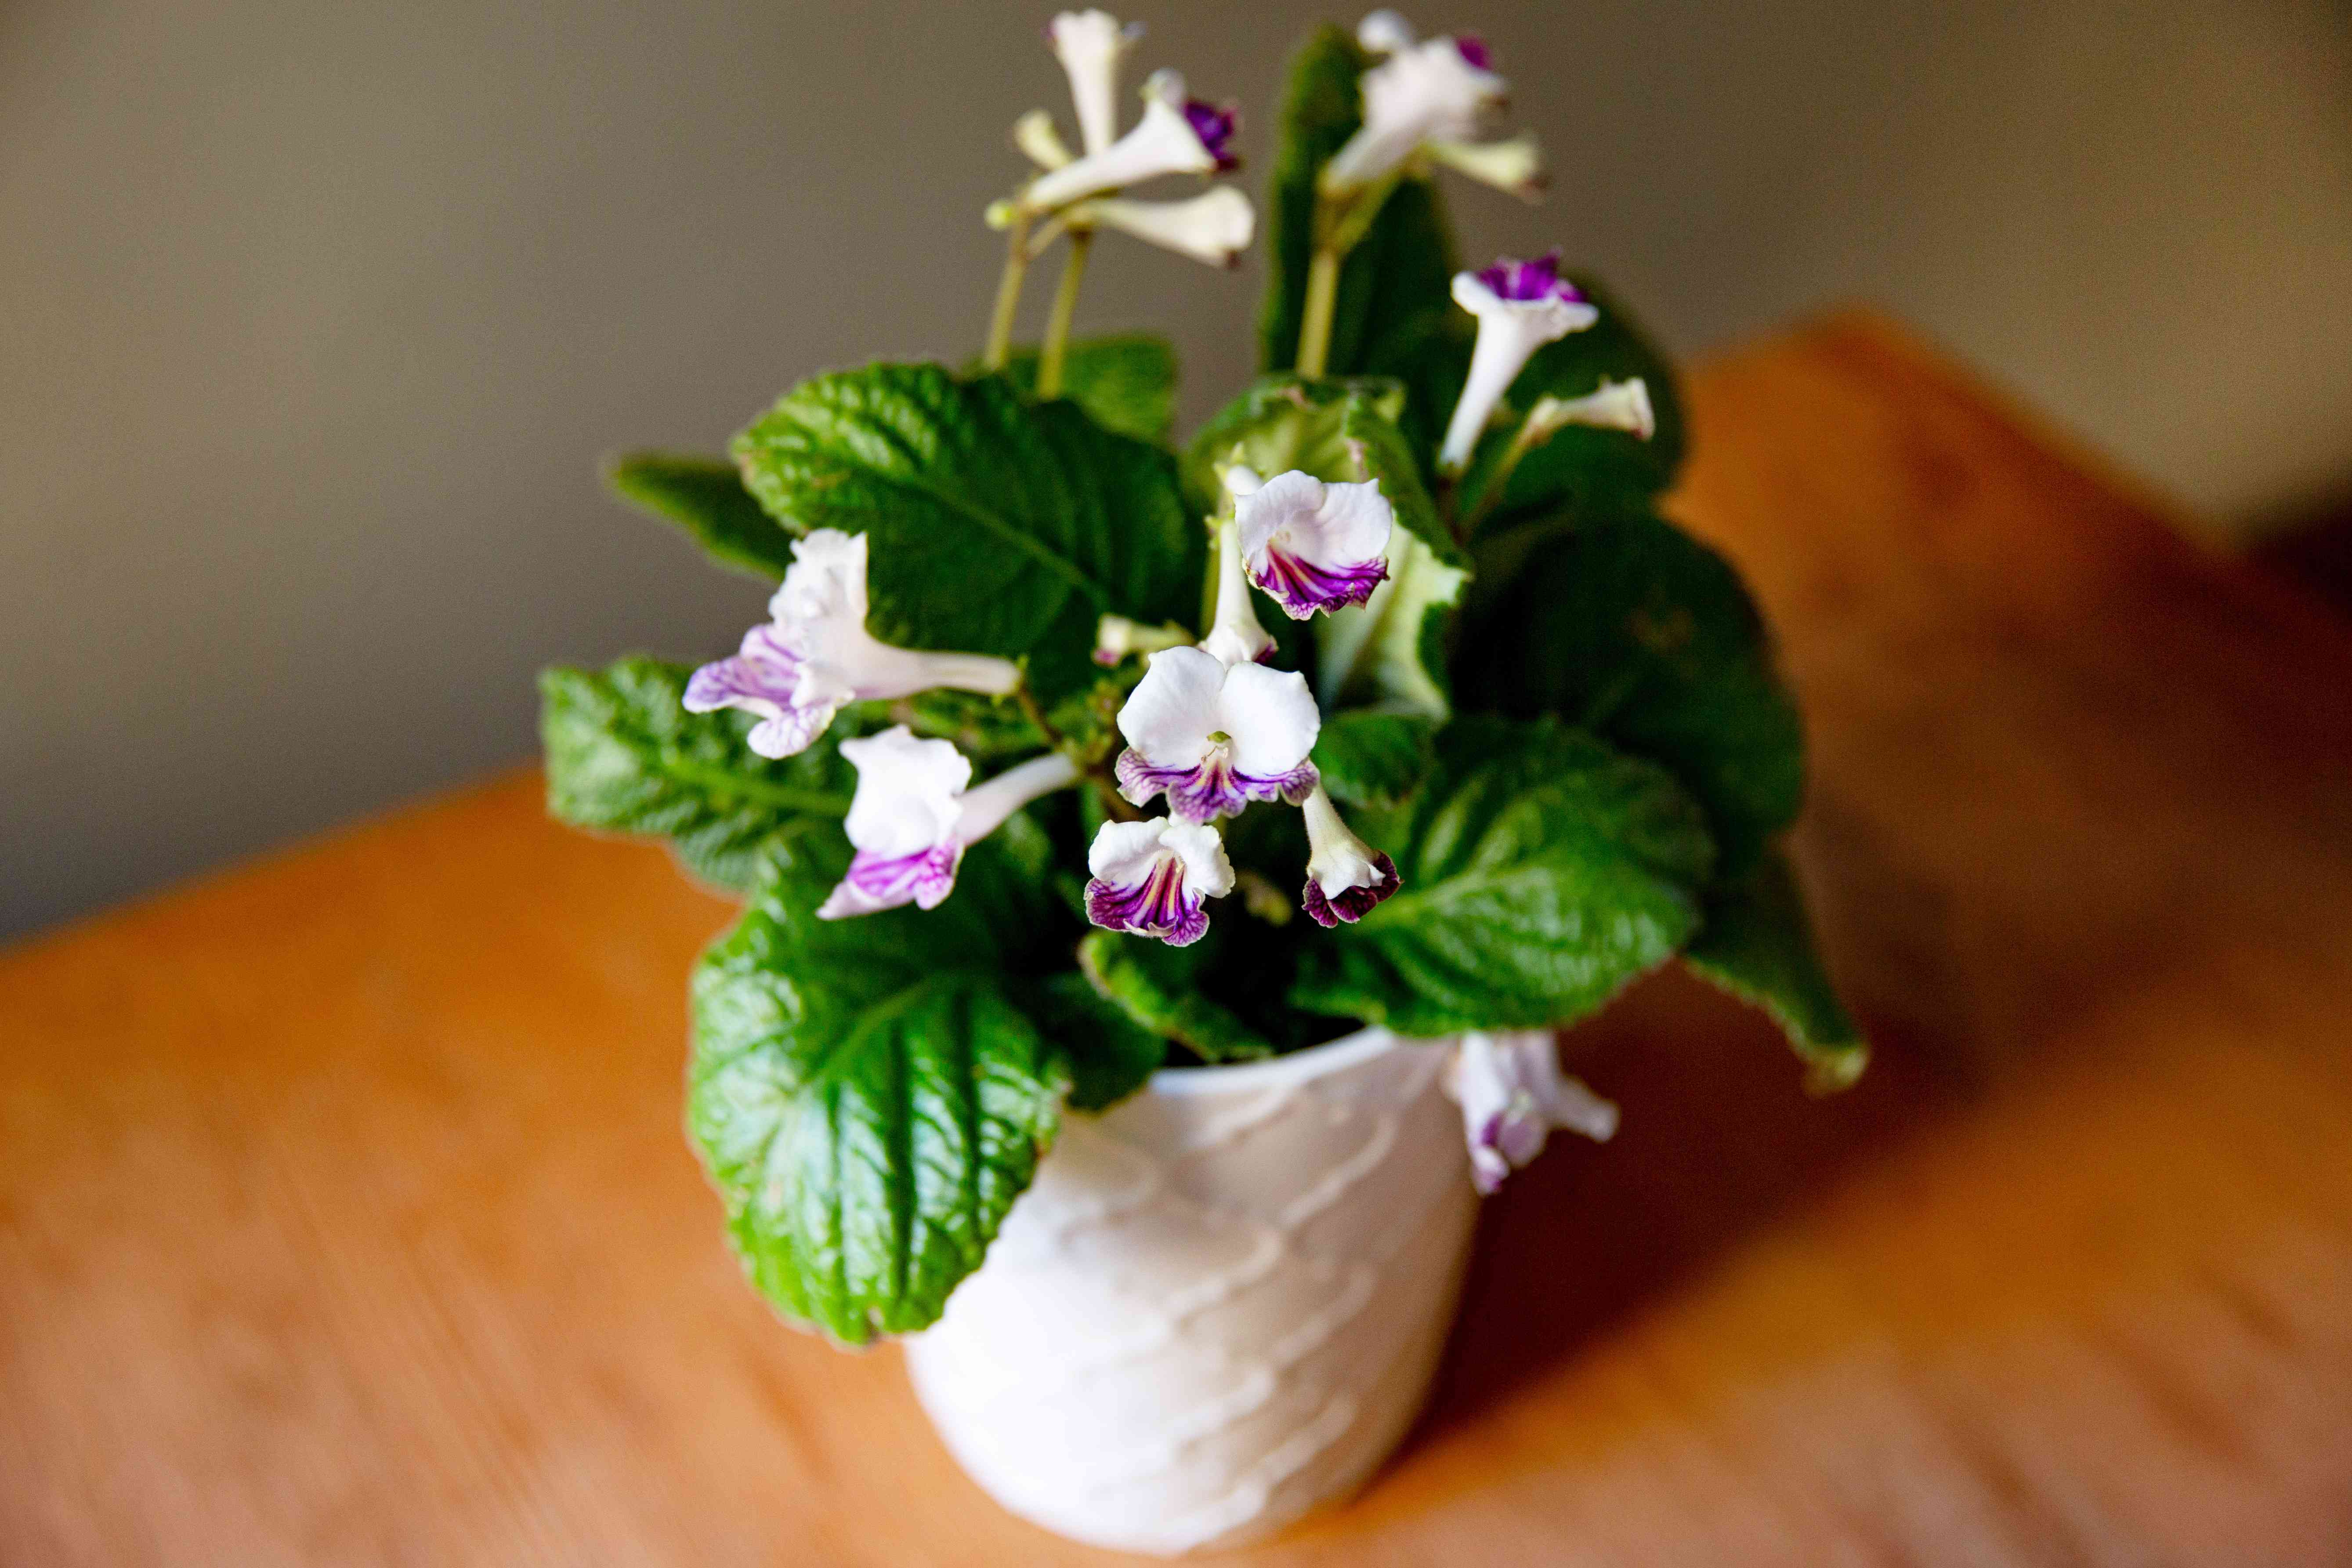 Streptocarpus plant in white pot with white and purple flowers from above